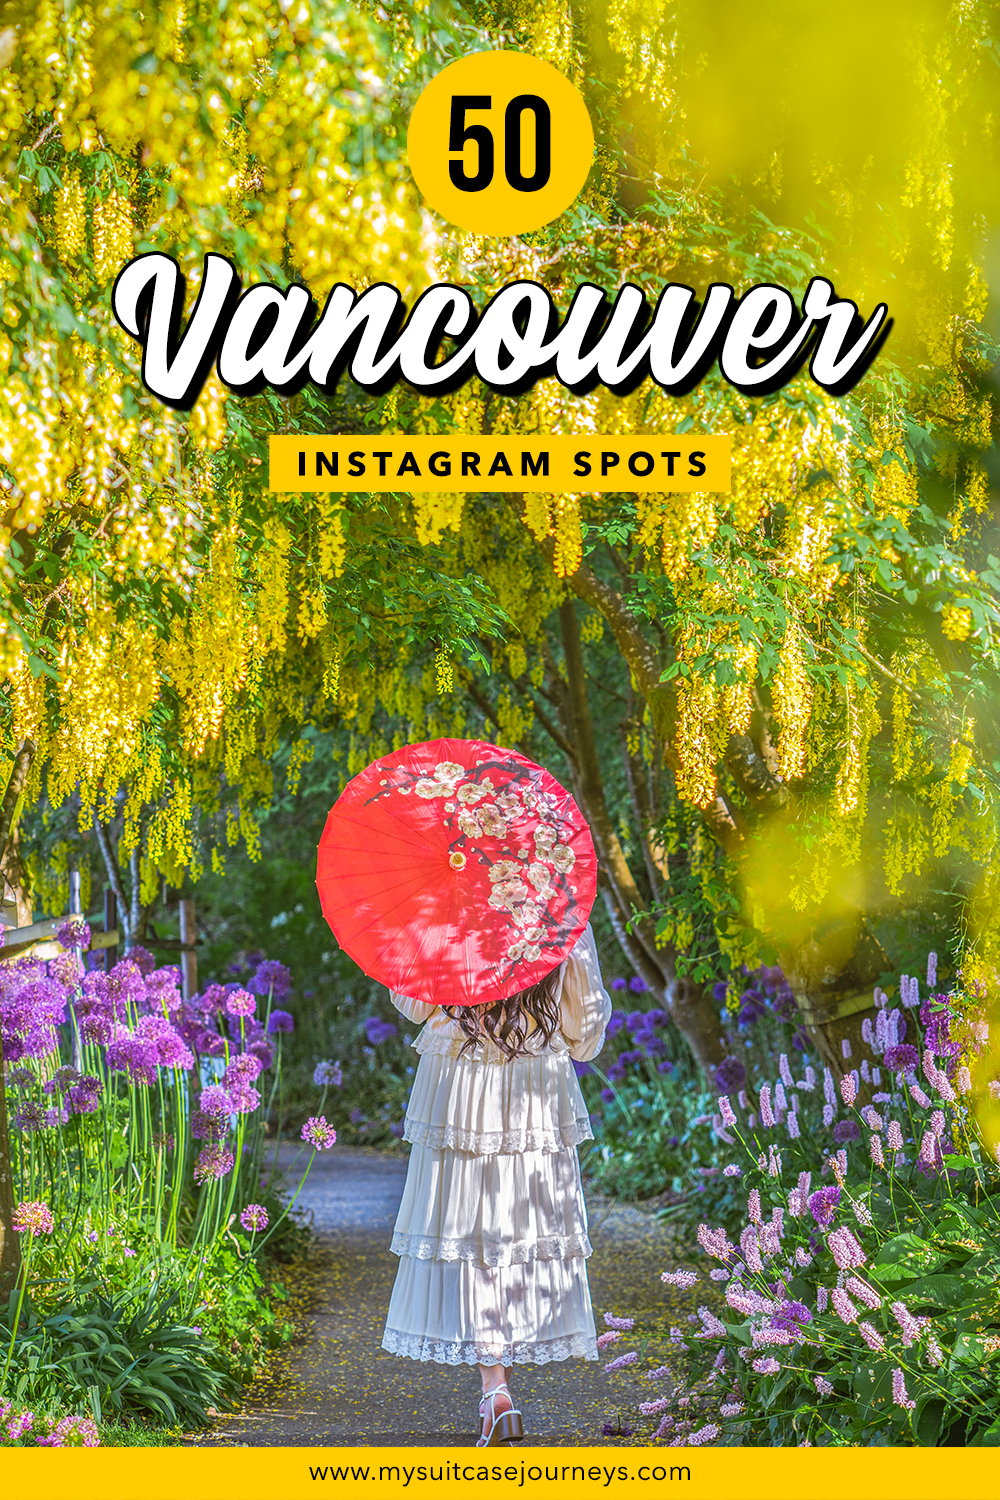 50 most Instagrammable places in Vancouver to help you snatch new followers!